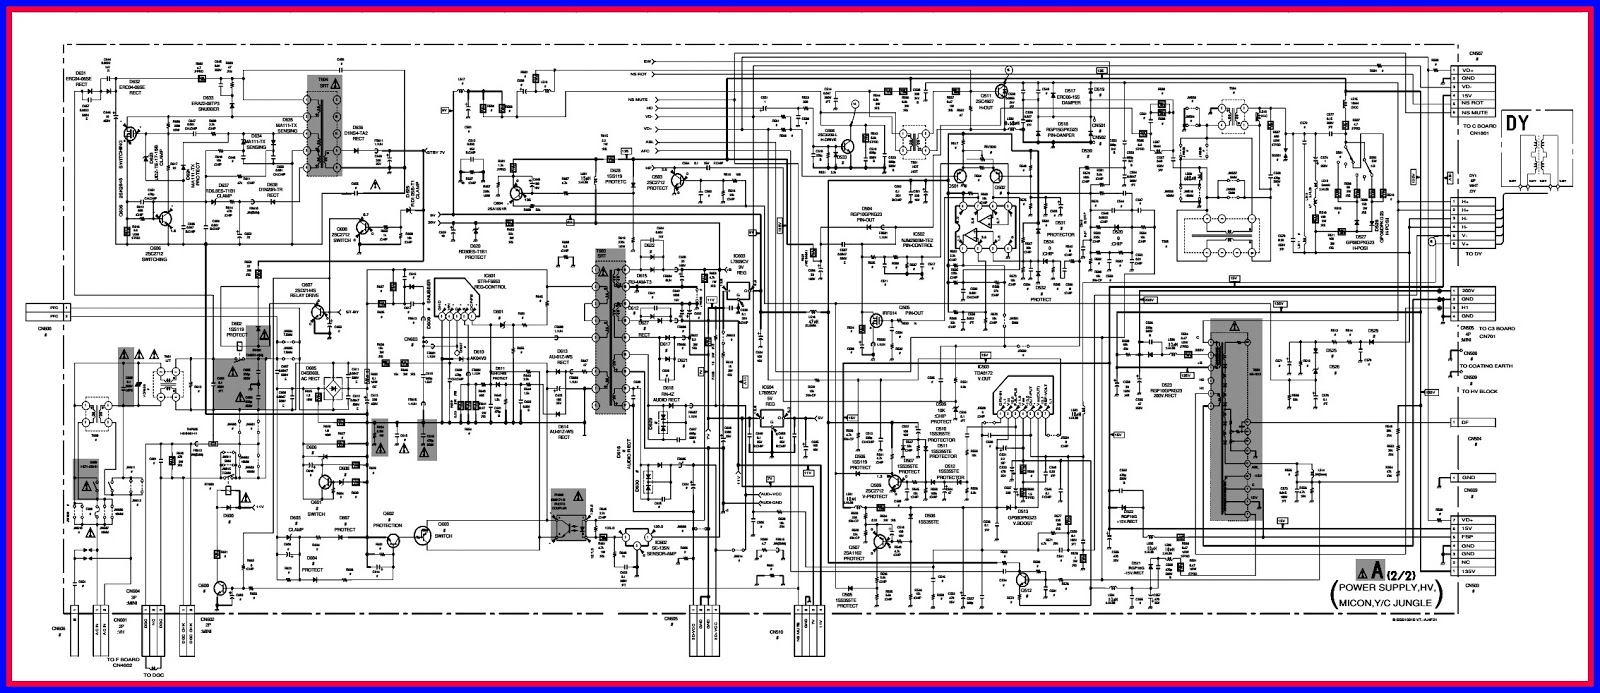 Unusual Sony Tv Wiring Diagram Photos - Electrical Circuit Diagram ...